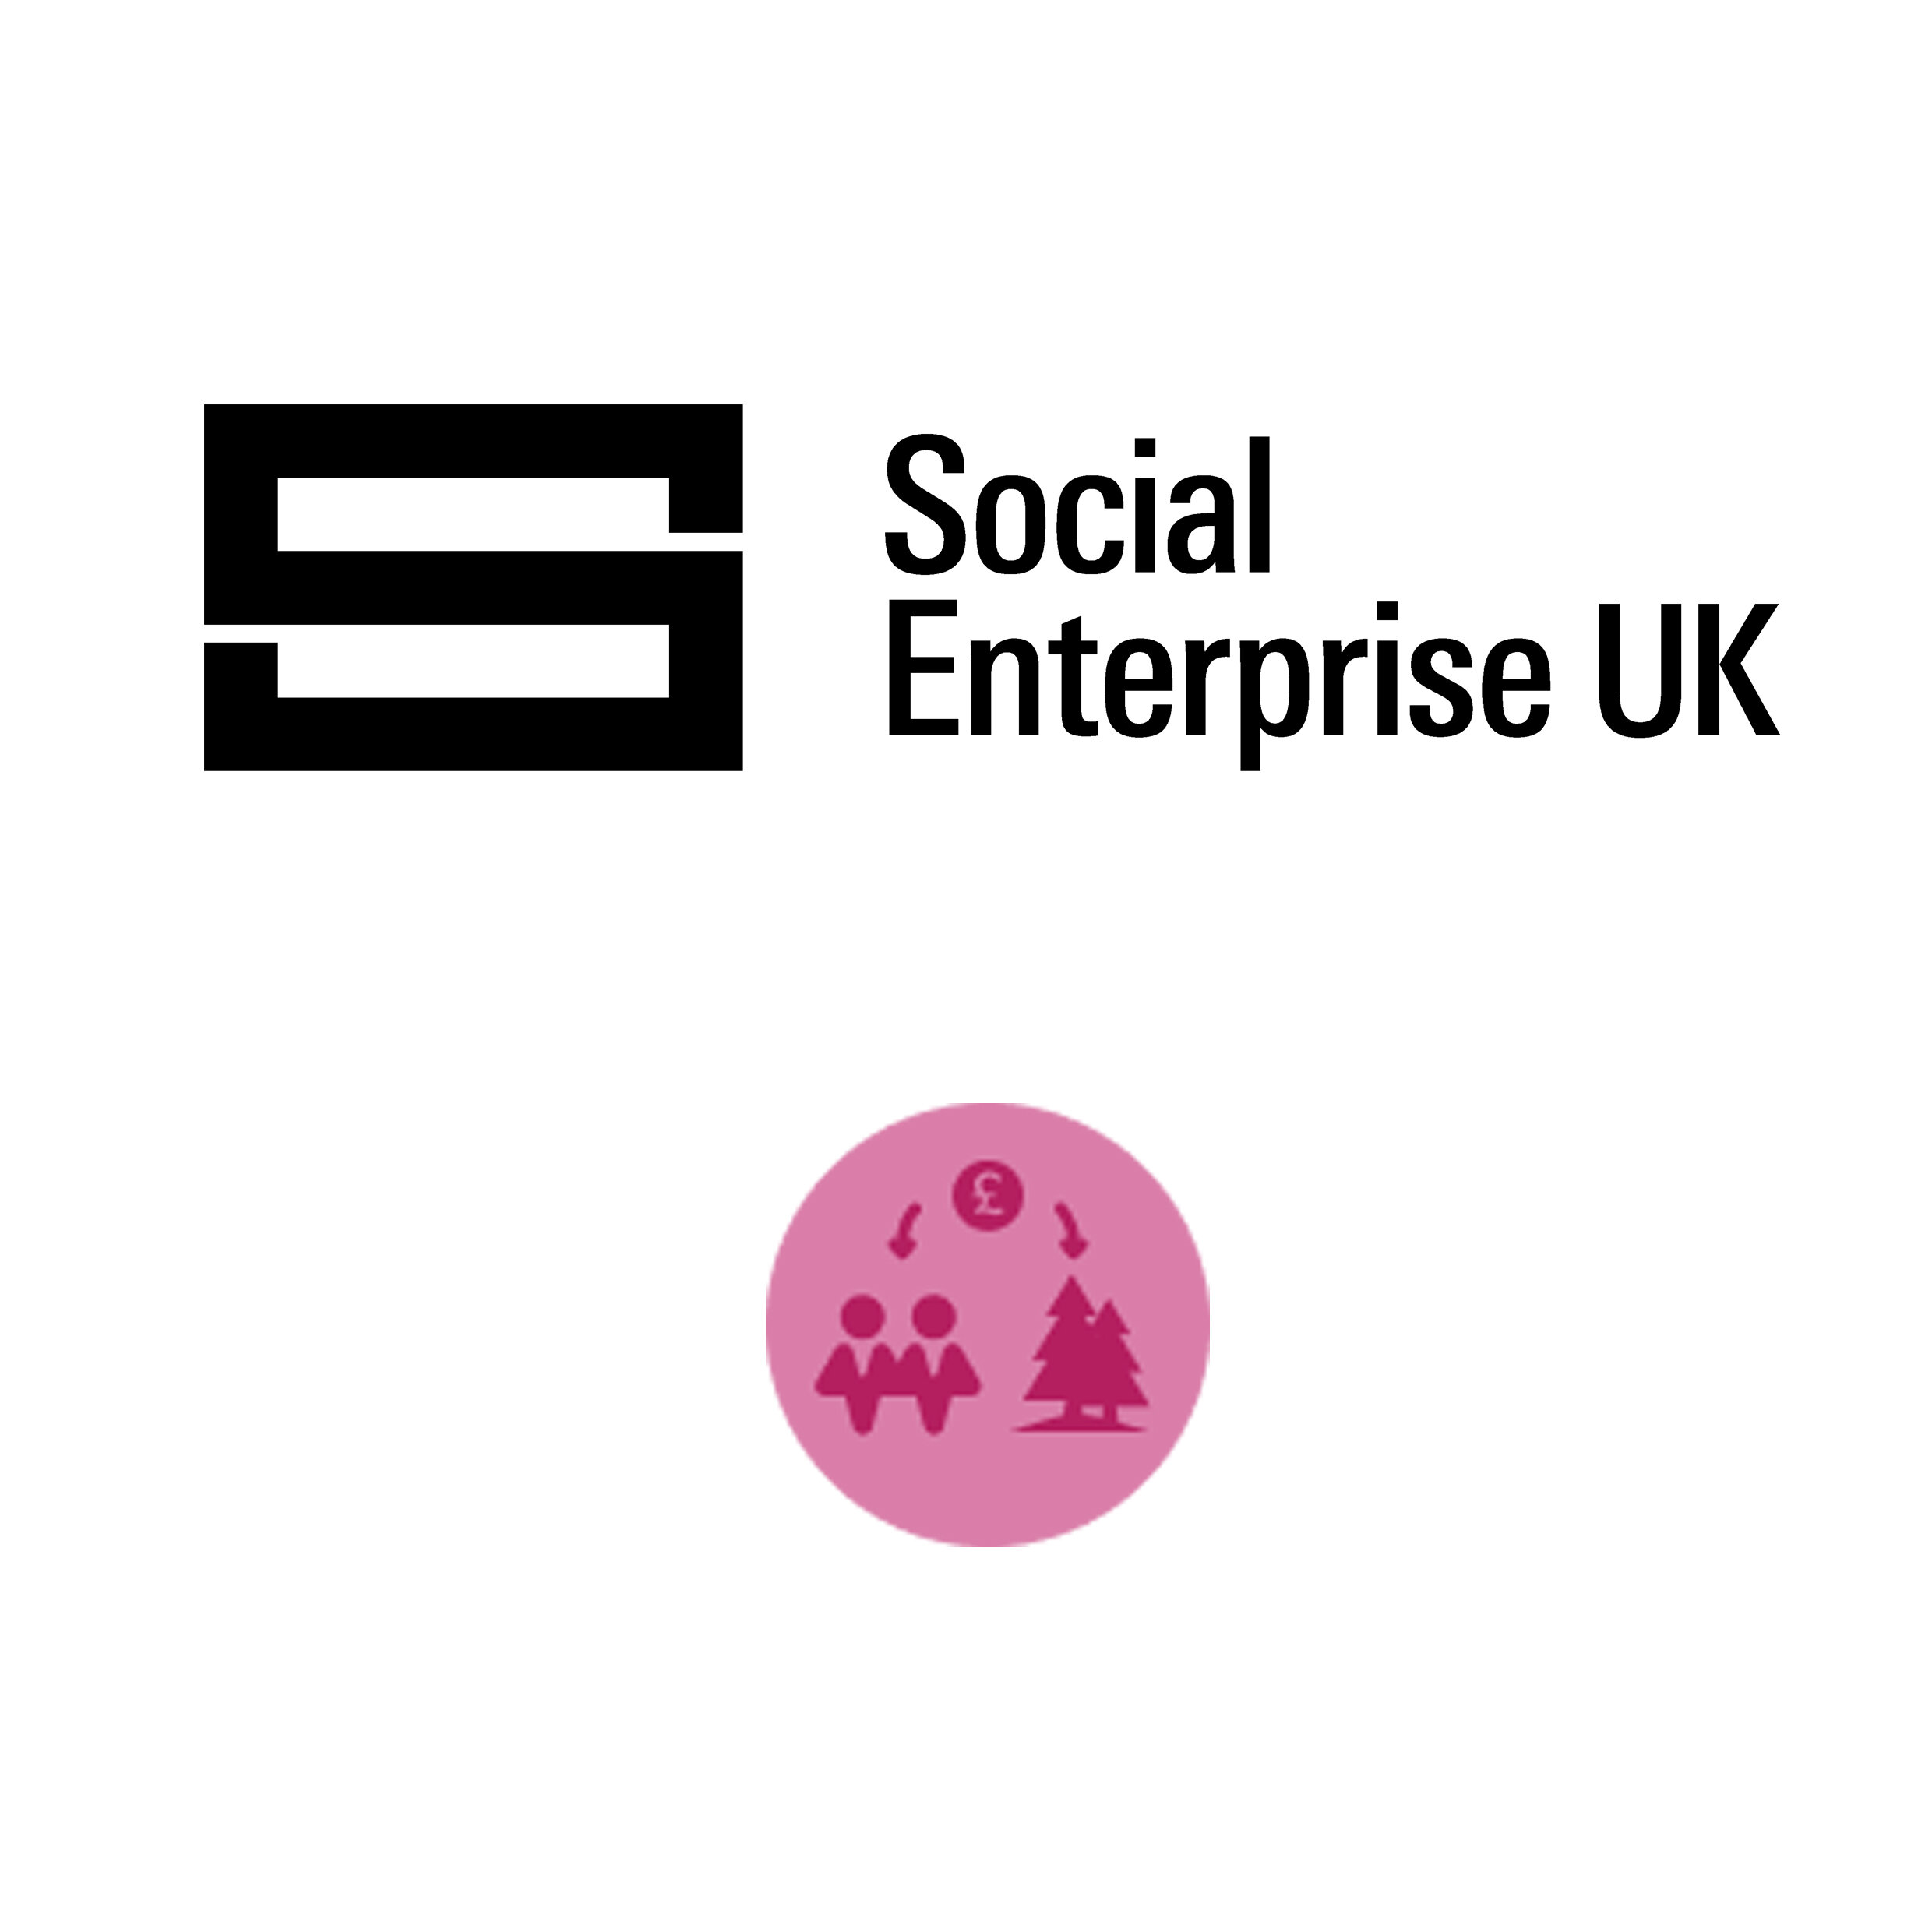 SEUK - We passionately believe that businesses who exist with a social purpose at the core can create lasting positive impacts on people and the planet. Social enterprises are businesses that use their profits to reinvest into a social or environmental mission.Thanks to our partnership with Social Enterprise UK, their network of incredible social enterprises can now be discovered via the CoGo App.